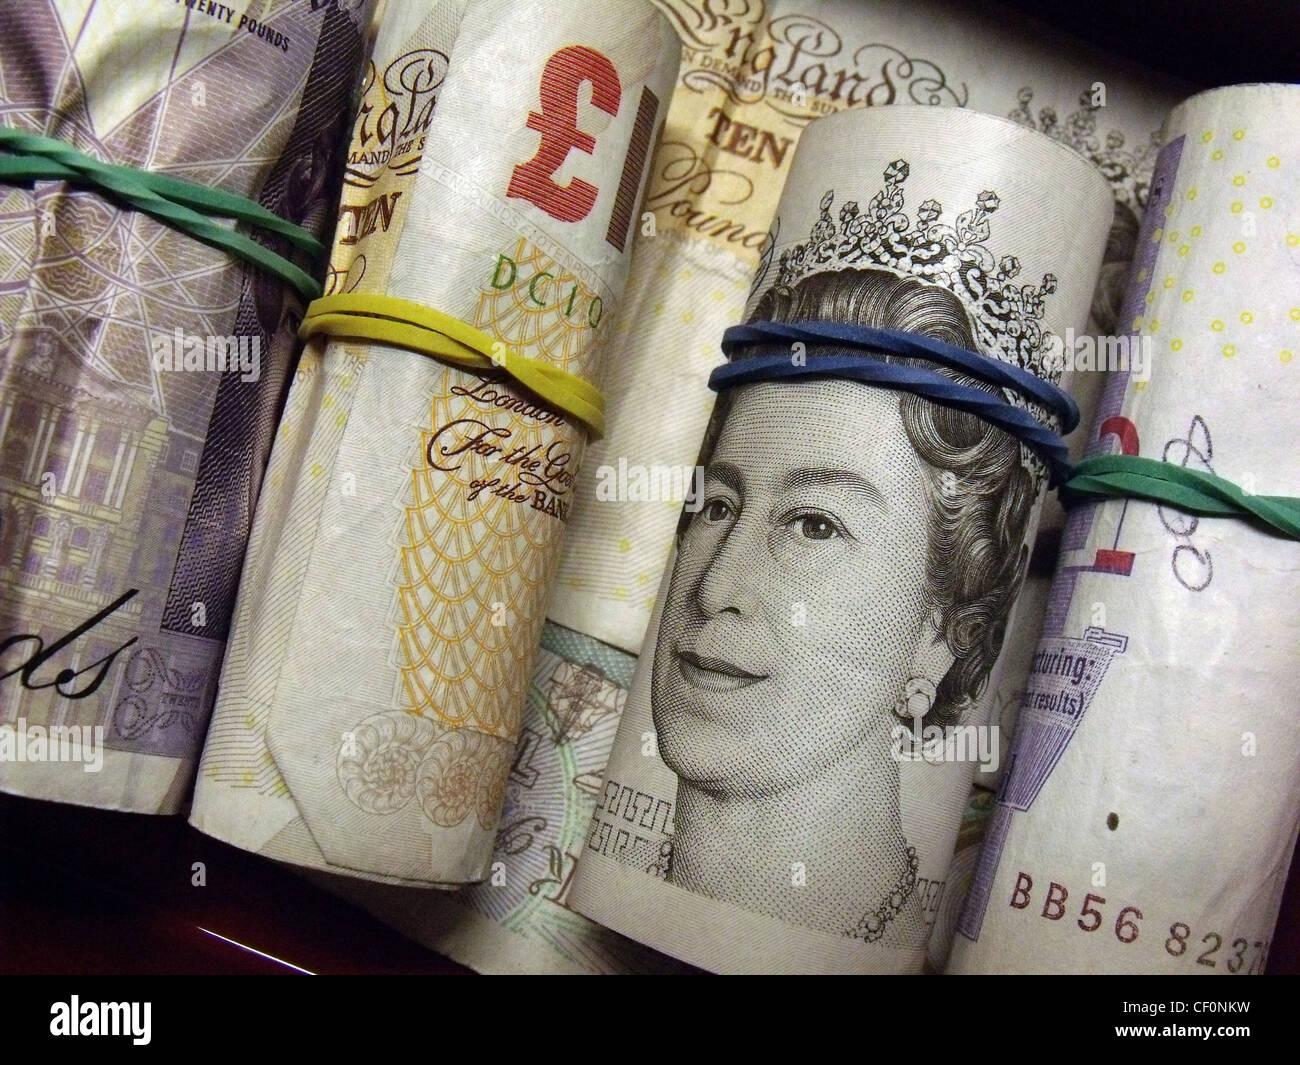 Tuesdays takings, rolls of ten and twenty pound notes with elasticbands - Stock Image